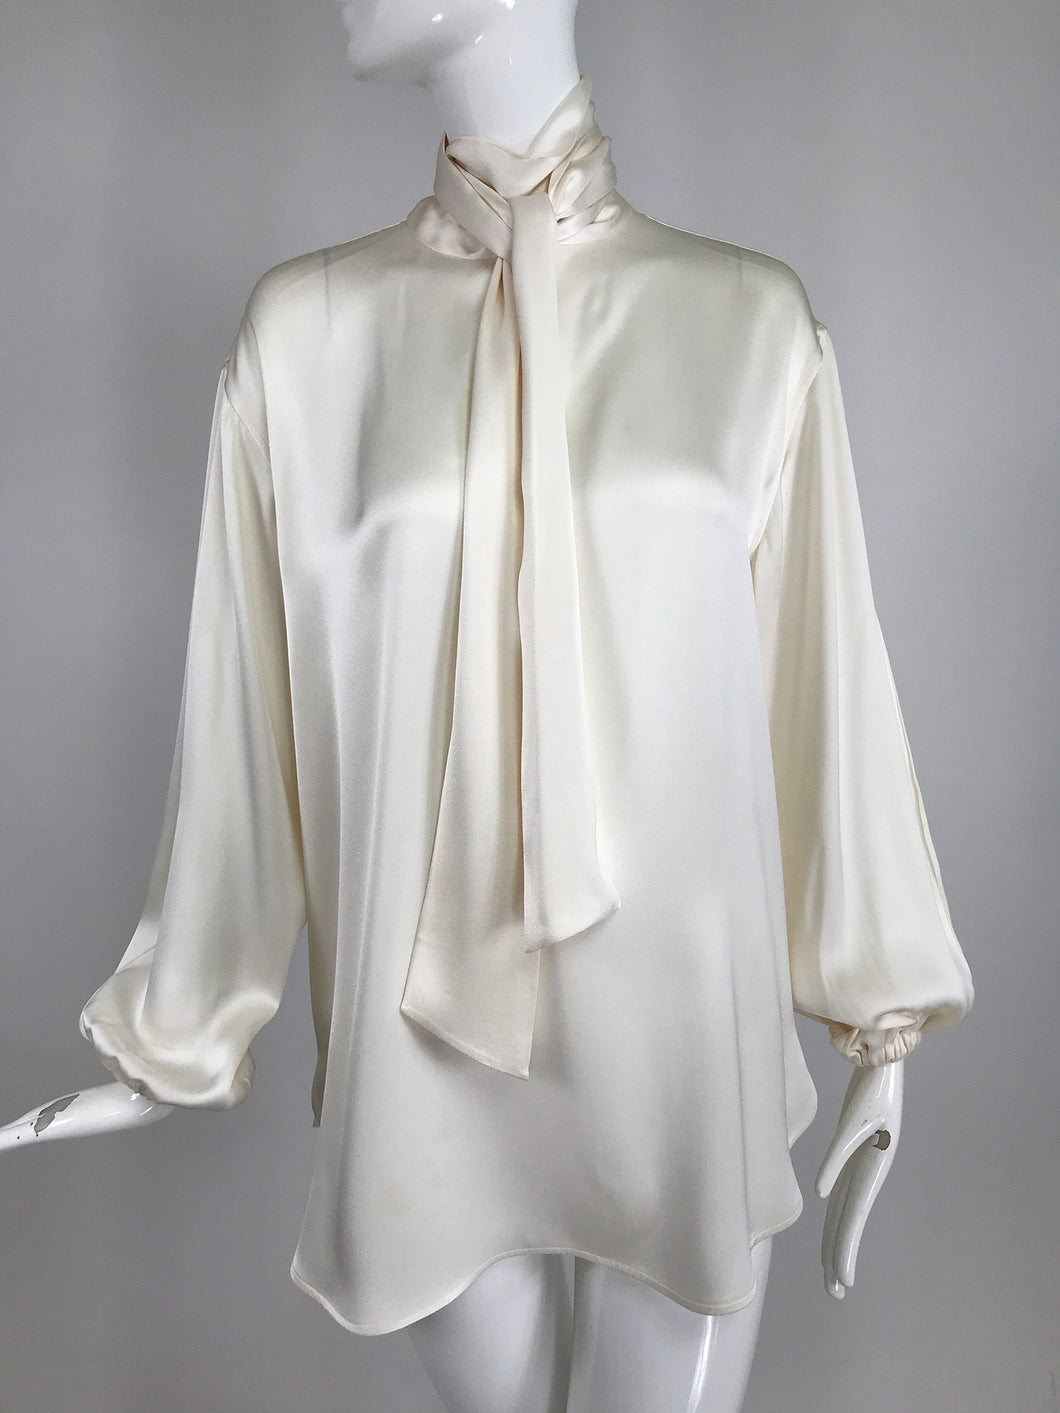 Celine Candle light Silk Satin Oversize Tunic Top Full Sleeves Neck Ties